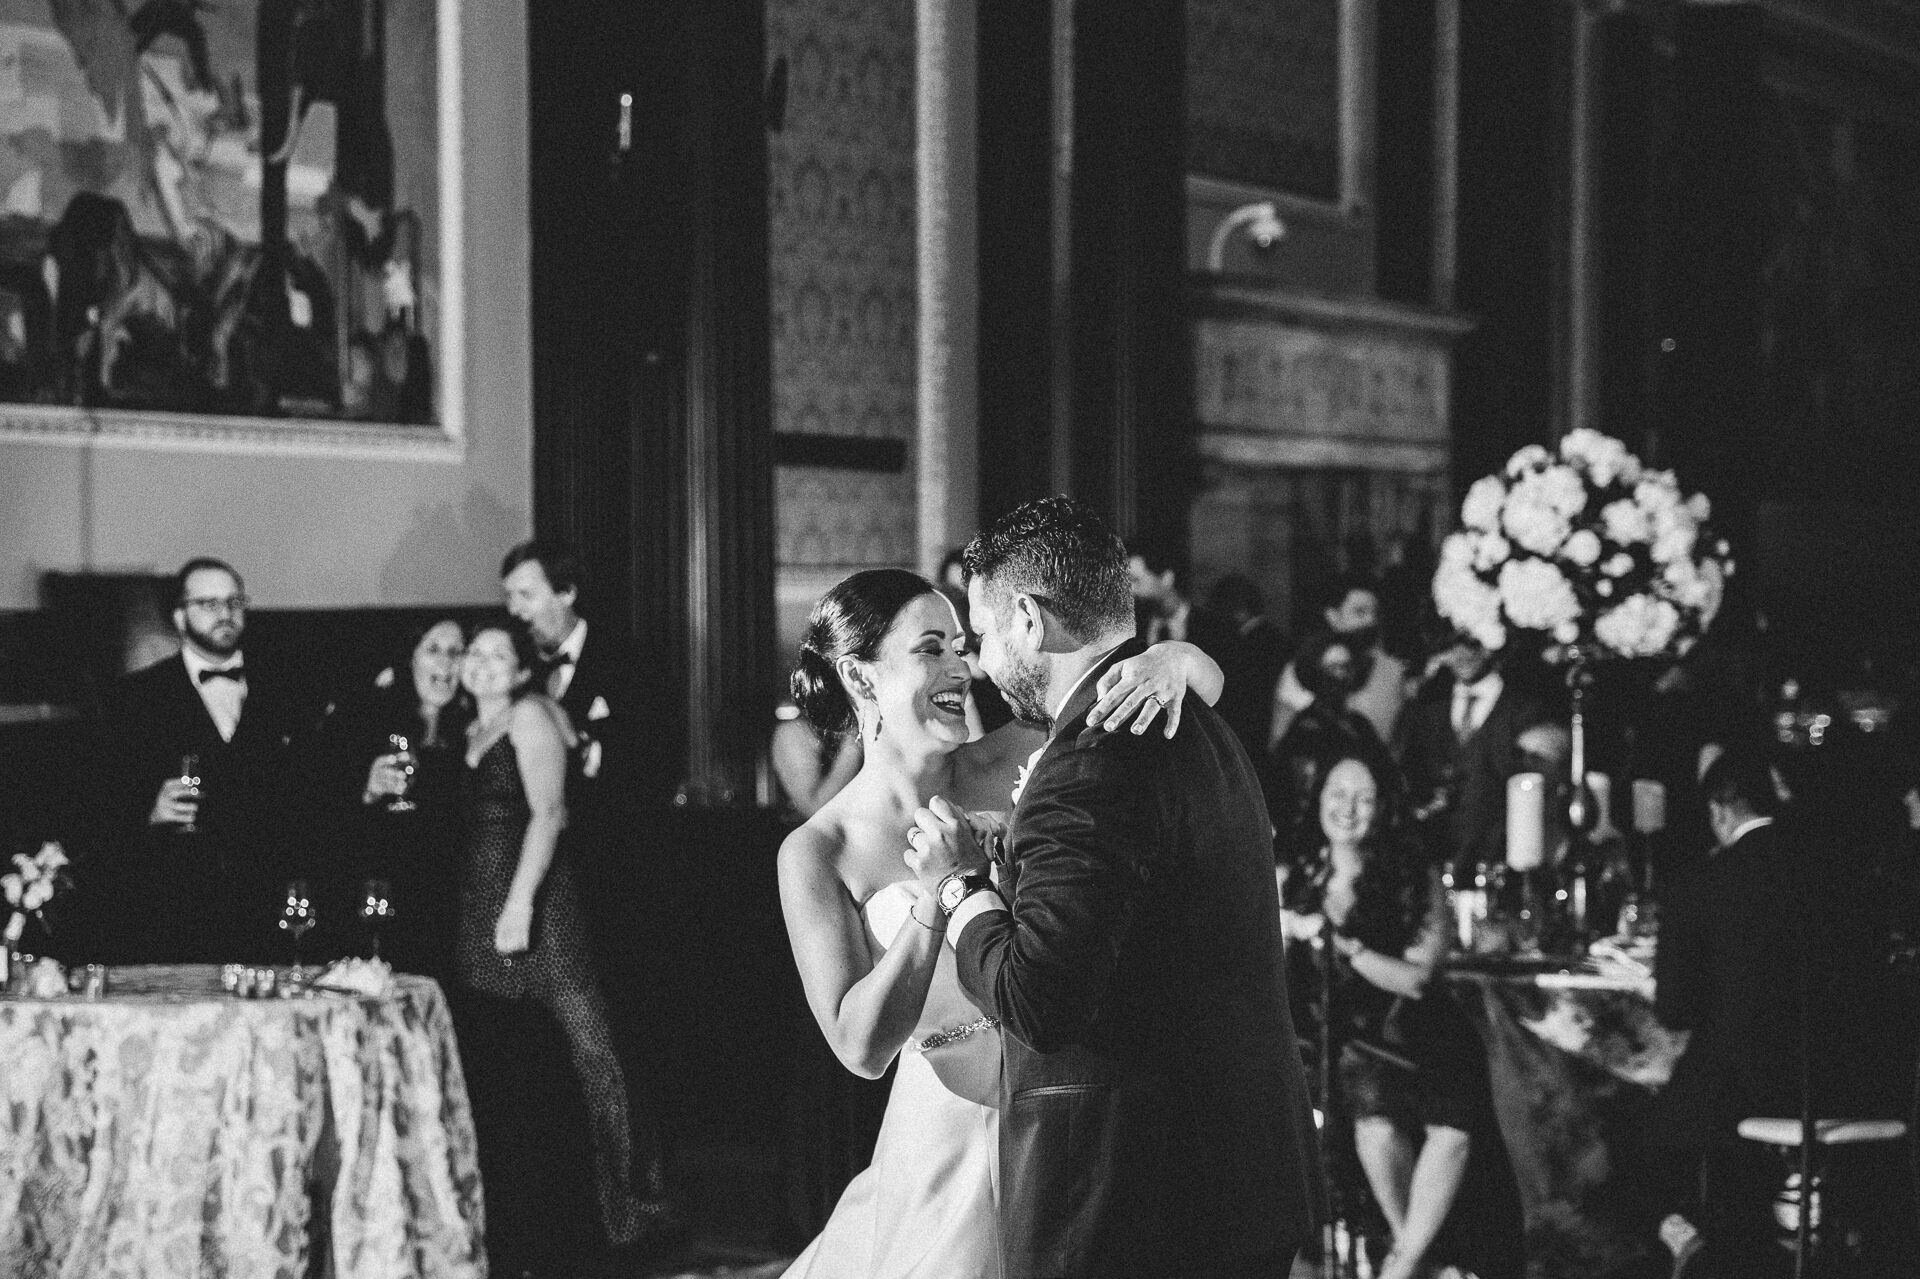 Playhouse State Theater Wedding Photographer in Cleveland 2 32.jpg